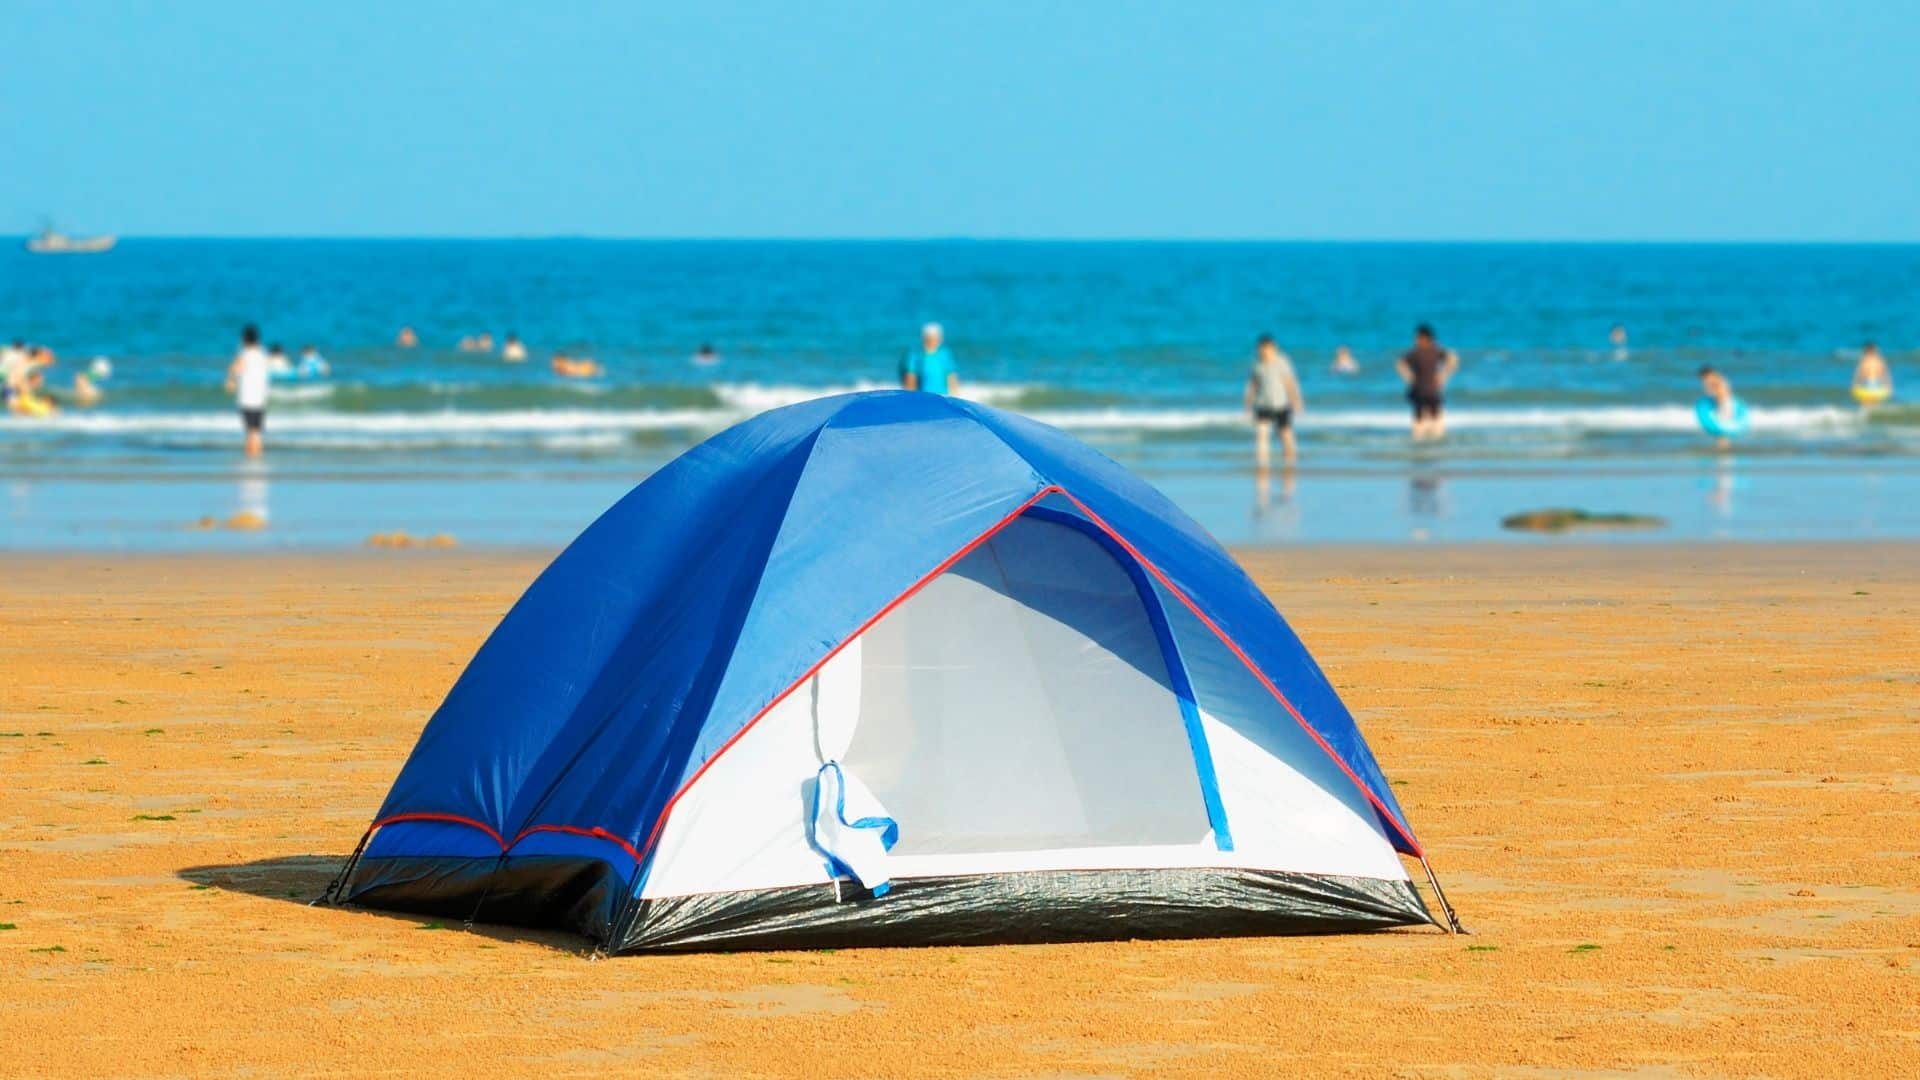 How to Secure a Tent on the Beach